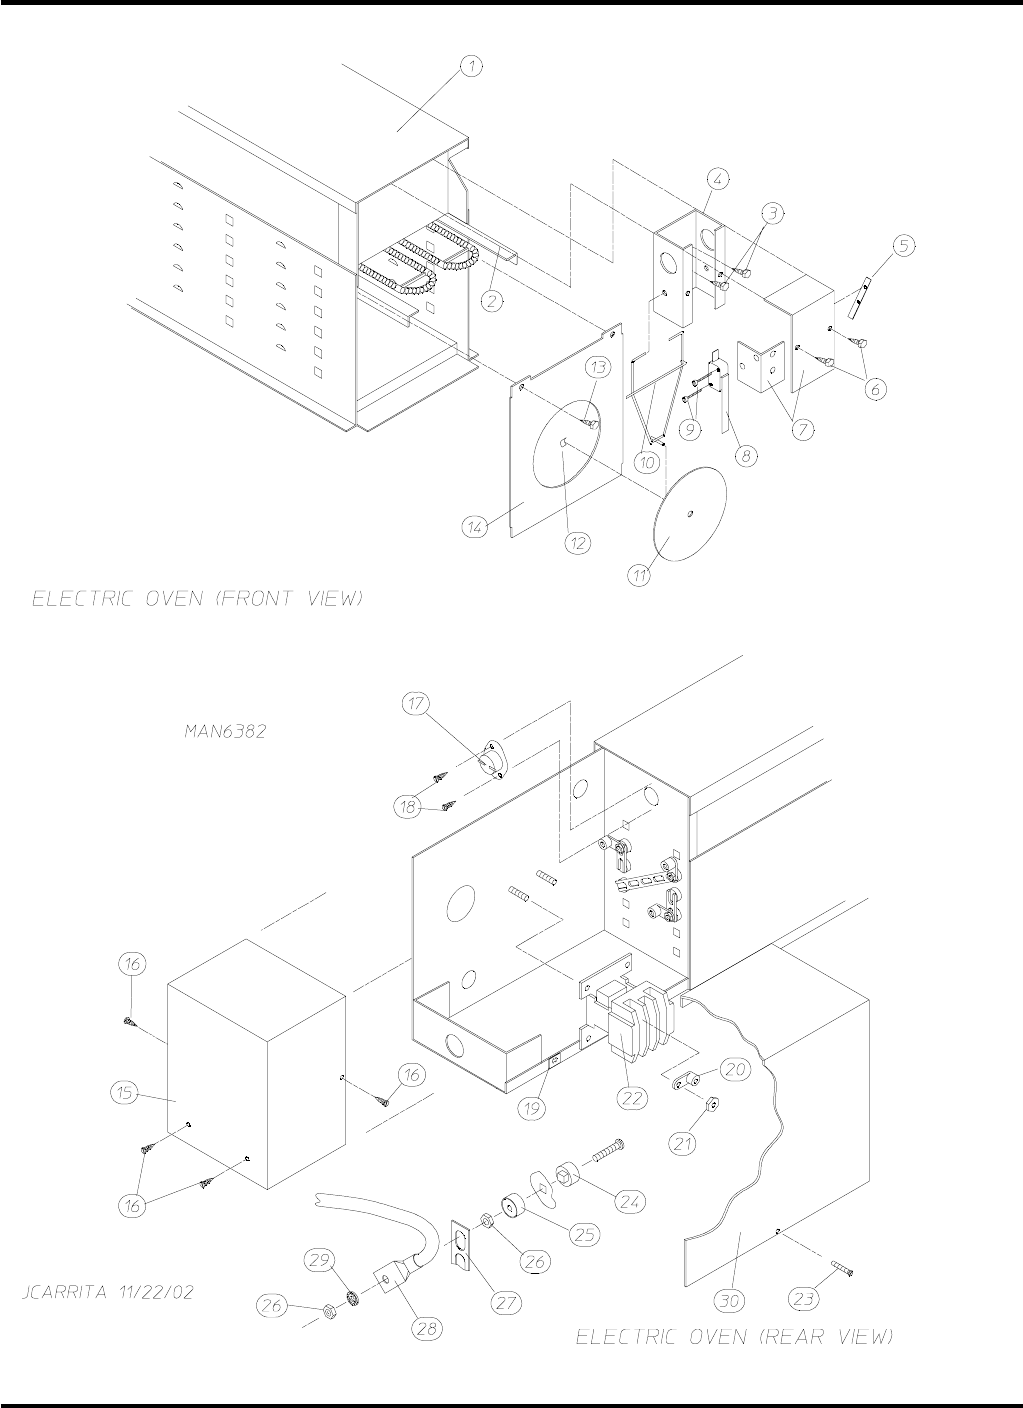 American Dryer Corp Ml 758 Users Manual Ml758 Txt 3pmd Milnor Wiring Diagram 28 Corporation 450566 3